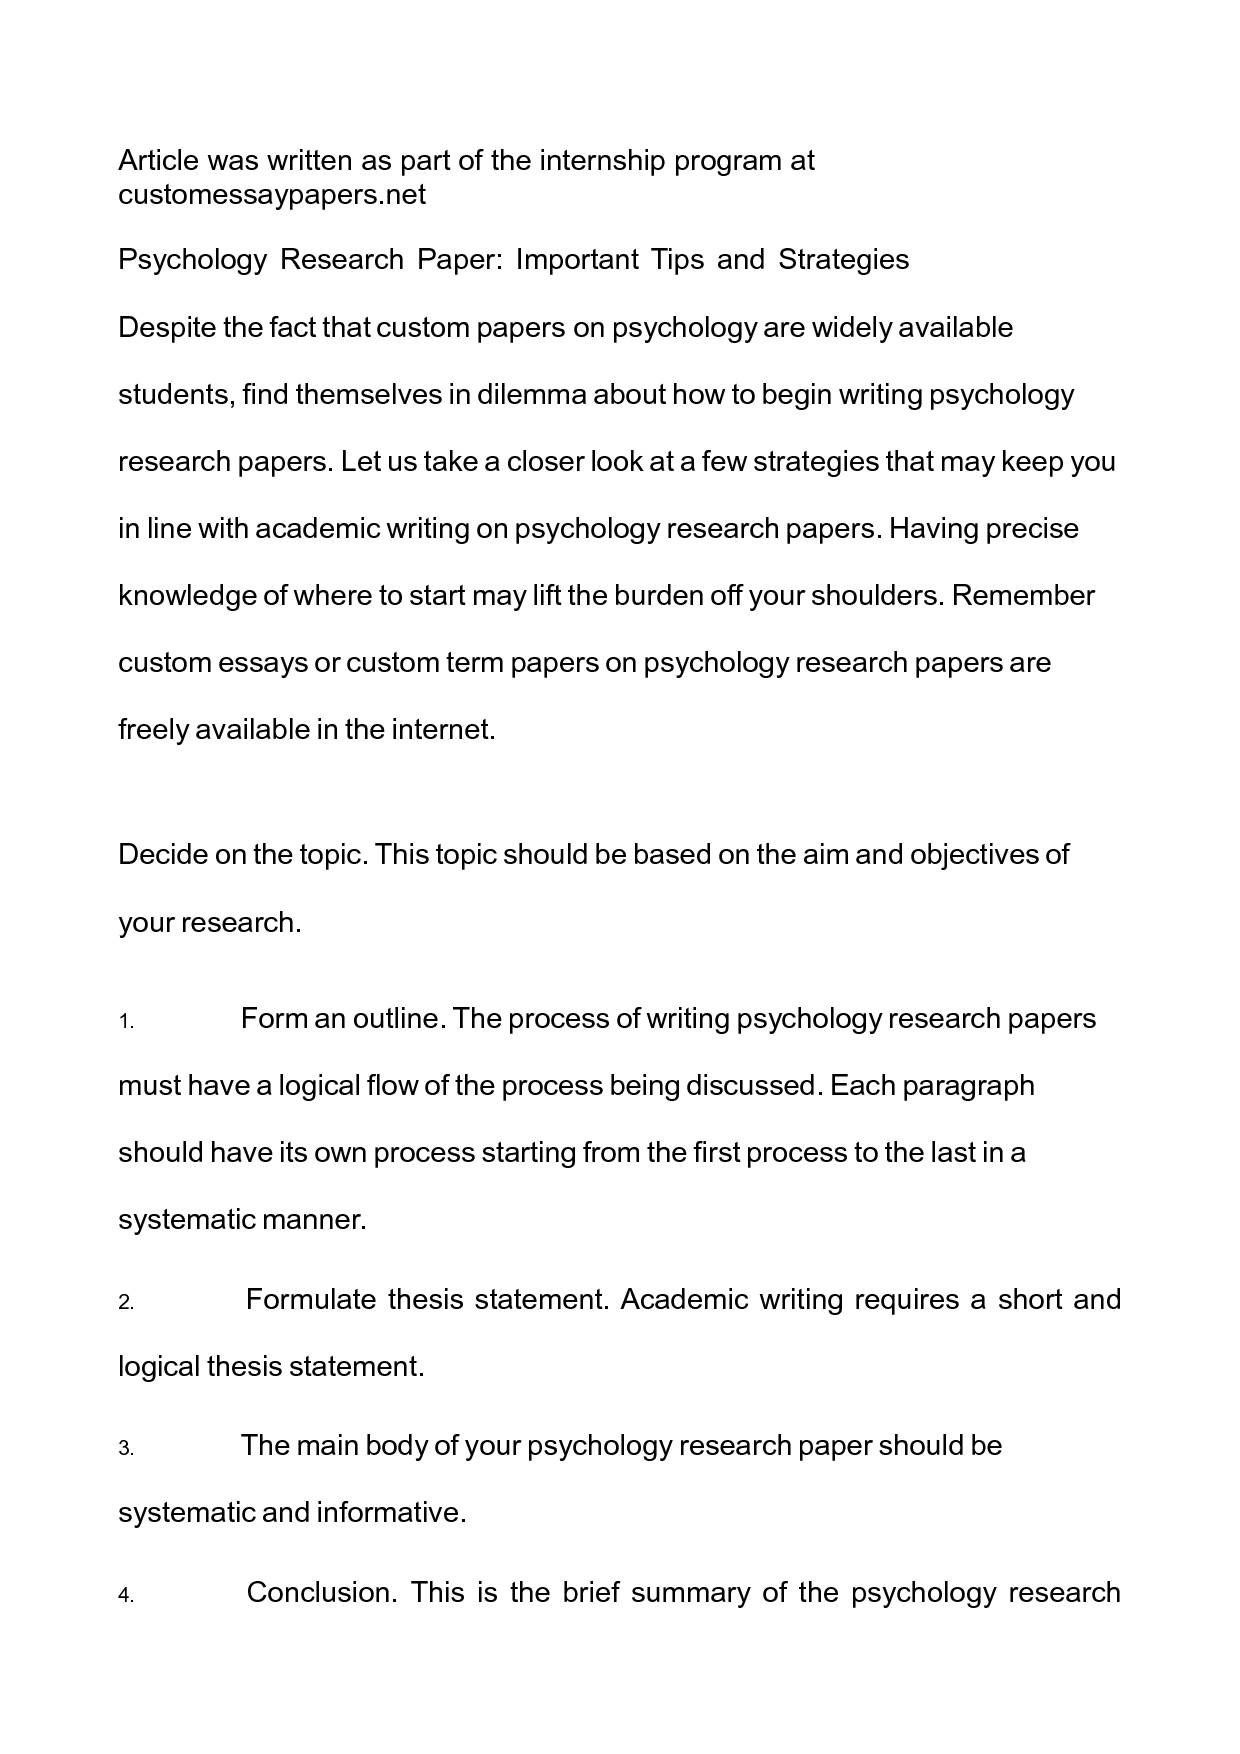 012 Research Paper Psychology Writing Services Topics College Awesome Students